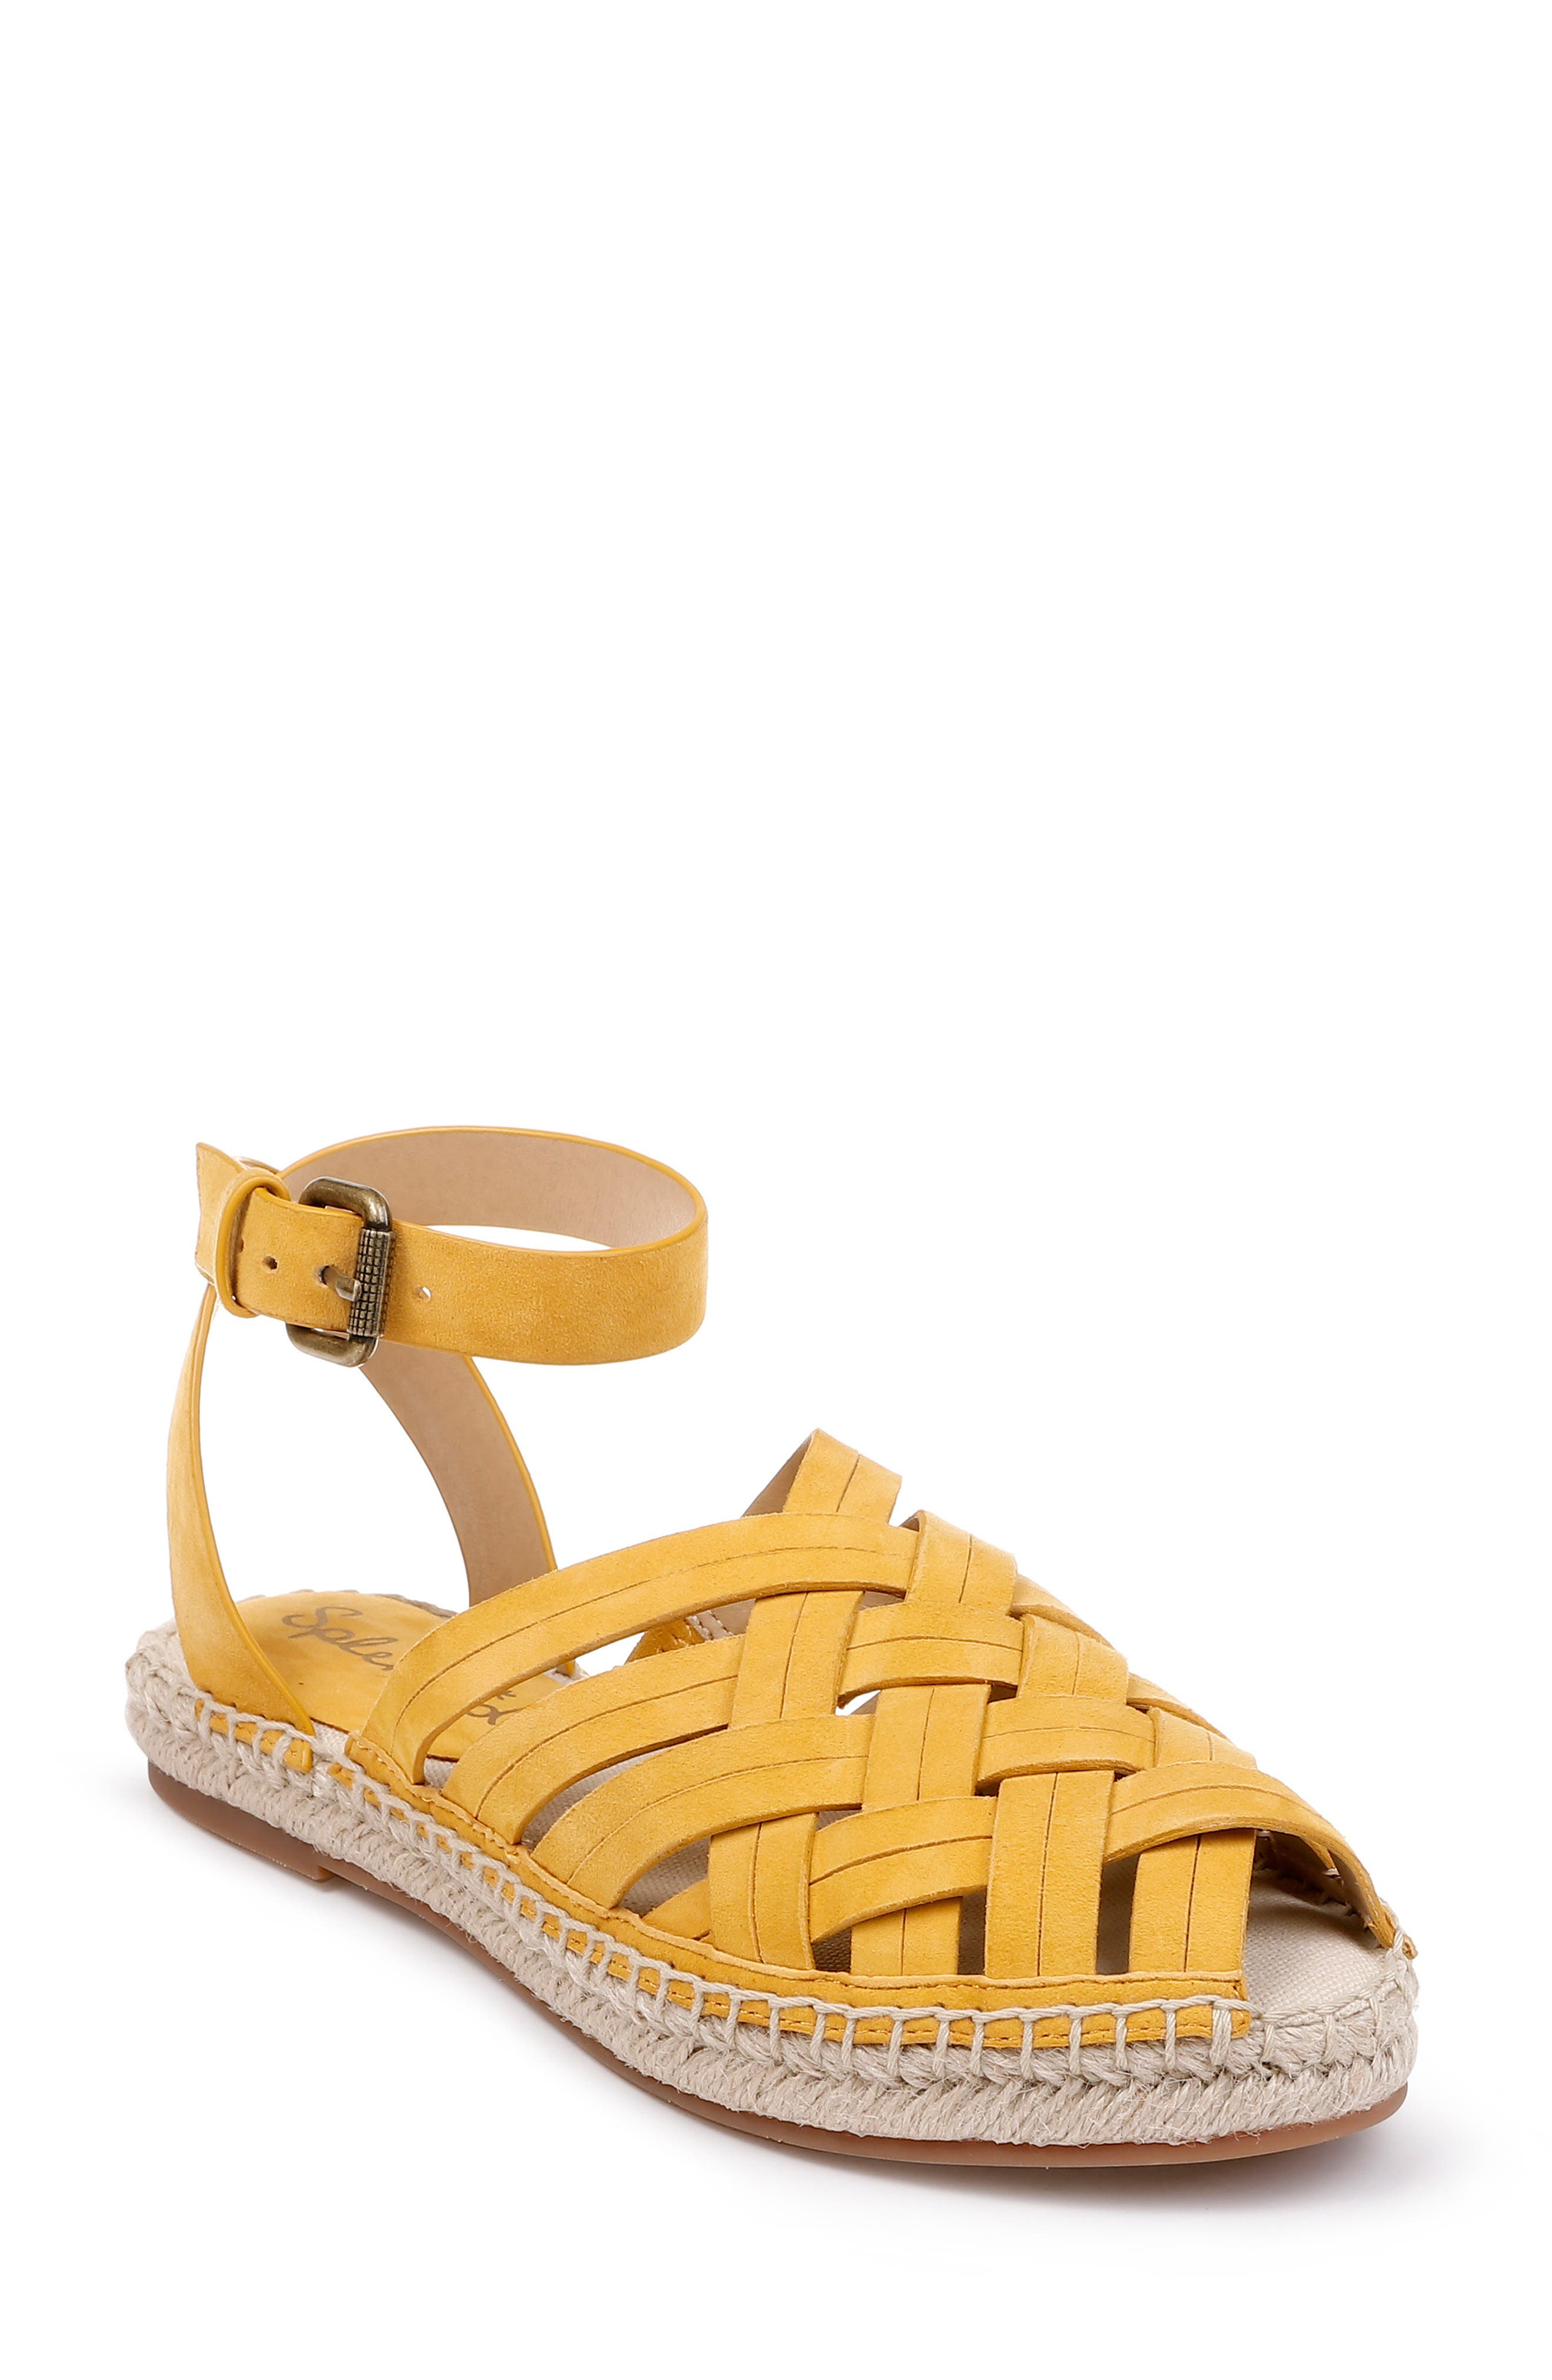 SPLENDID Sheryl Espadrille Ankle Strap Sandal, Main, color, YELLOW SUEDE